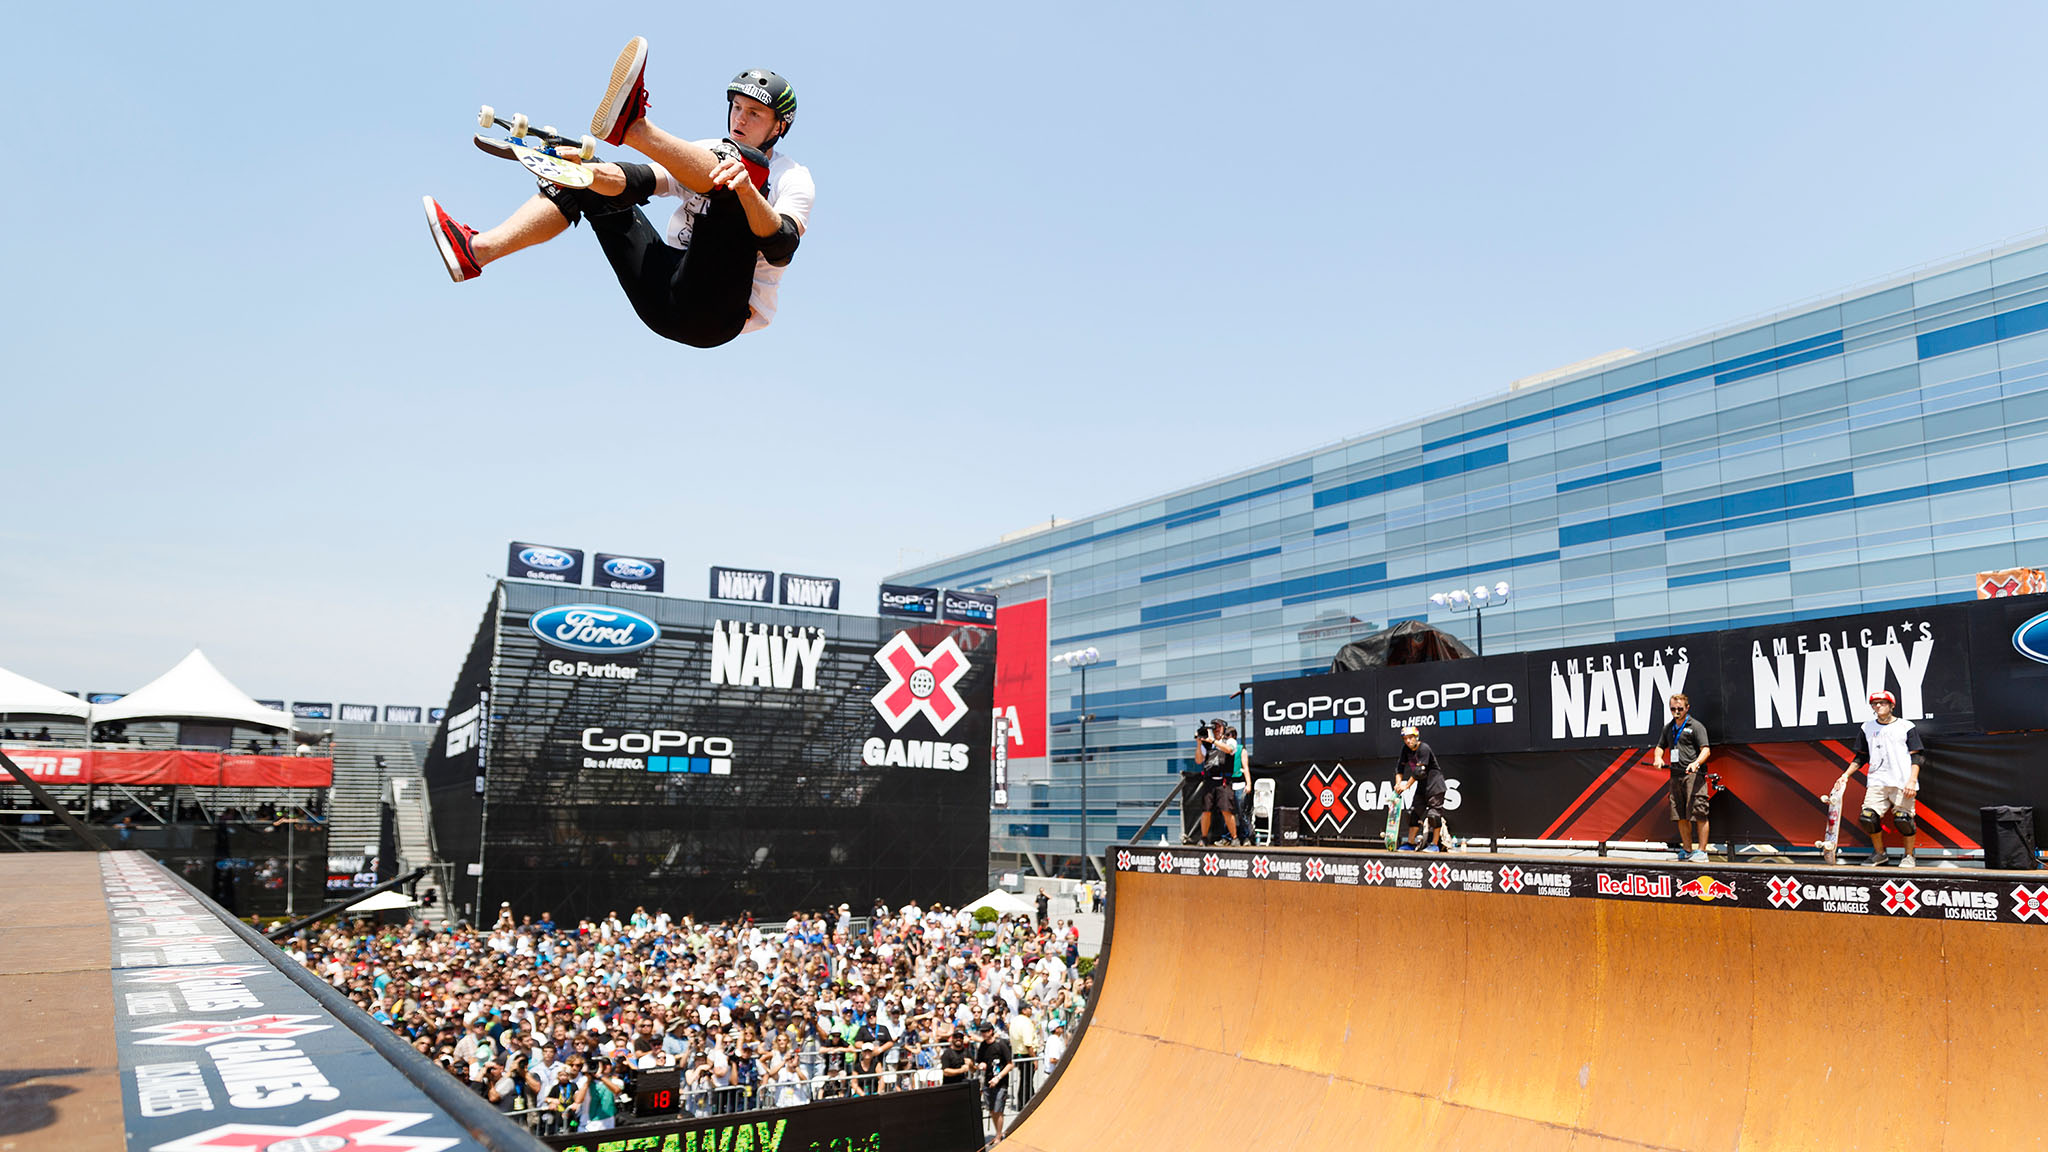 British skater Paul-Luc Ronchetti has competed three times in Vert at X Games but hasn't broken onto the podium yet. However, the 20-year-old moved to the U.S. in 2008, when his dad became general manager of LEGOLAND, and now skates every day, so Lasek and PLG better watch their backs.